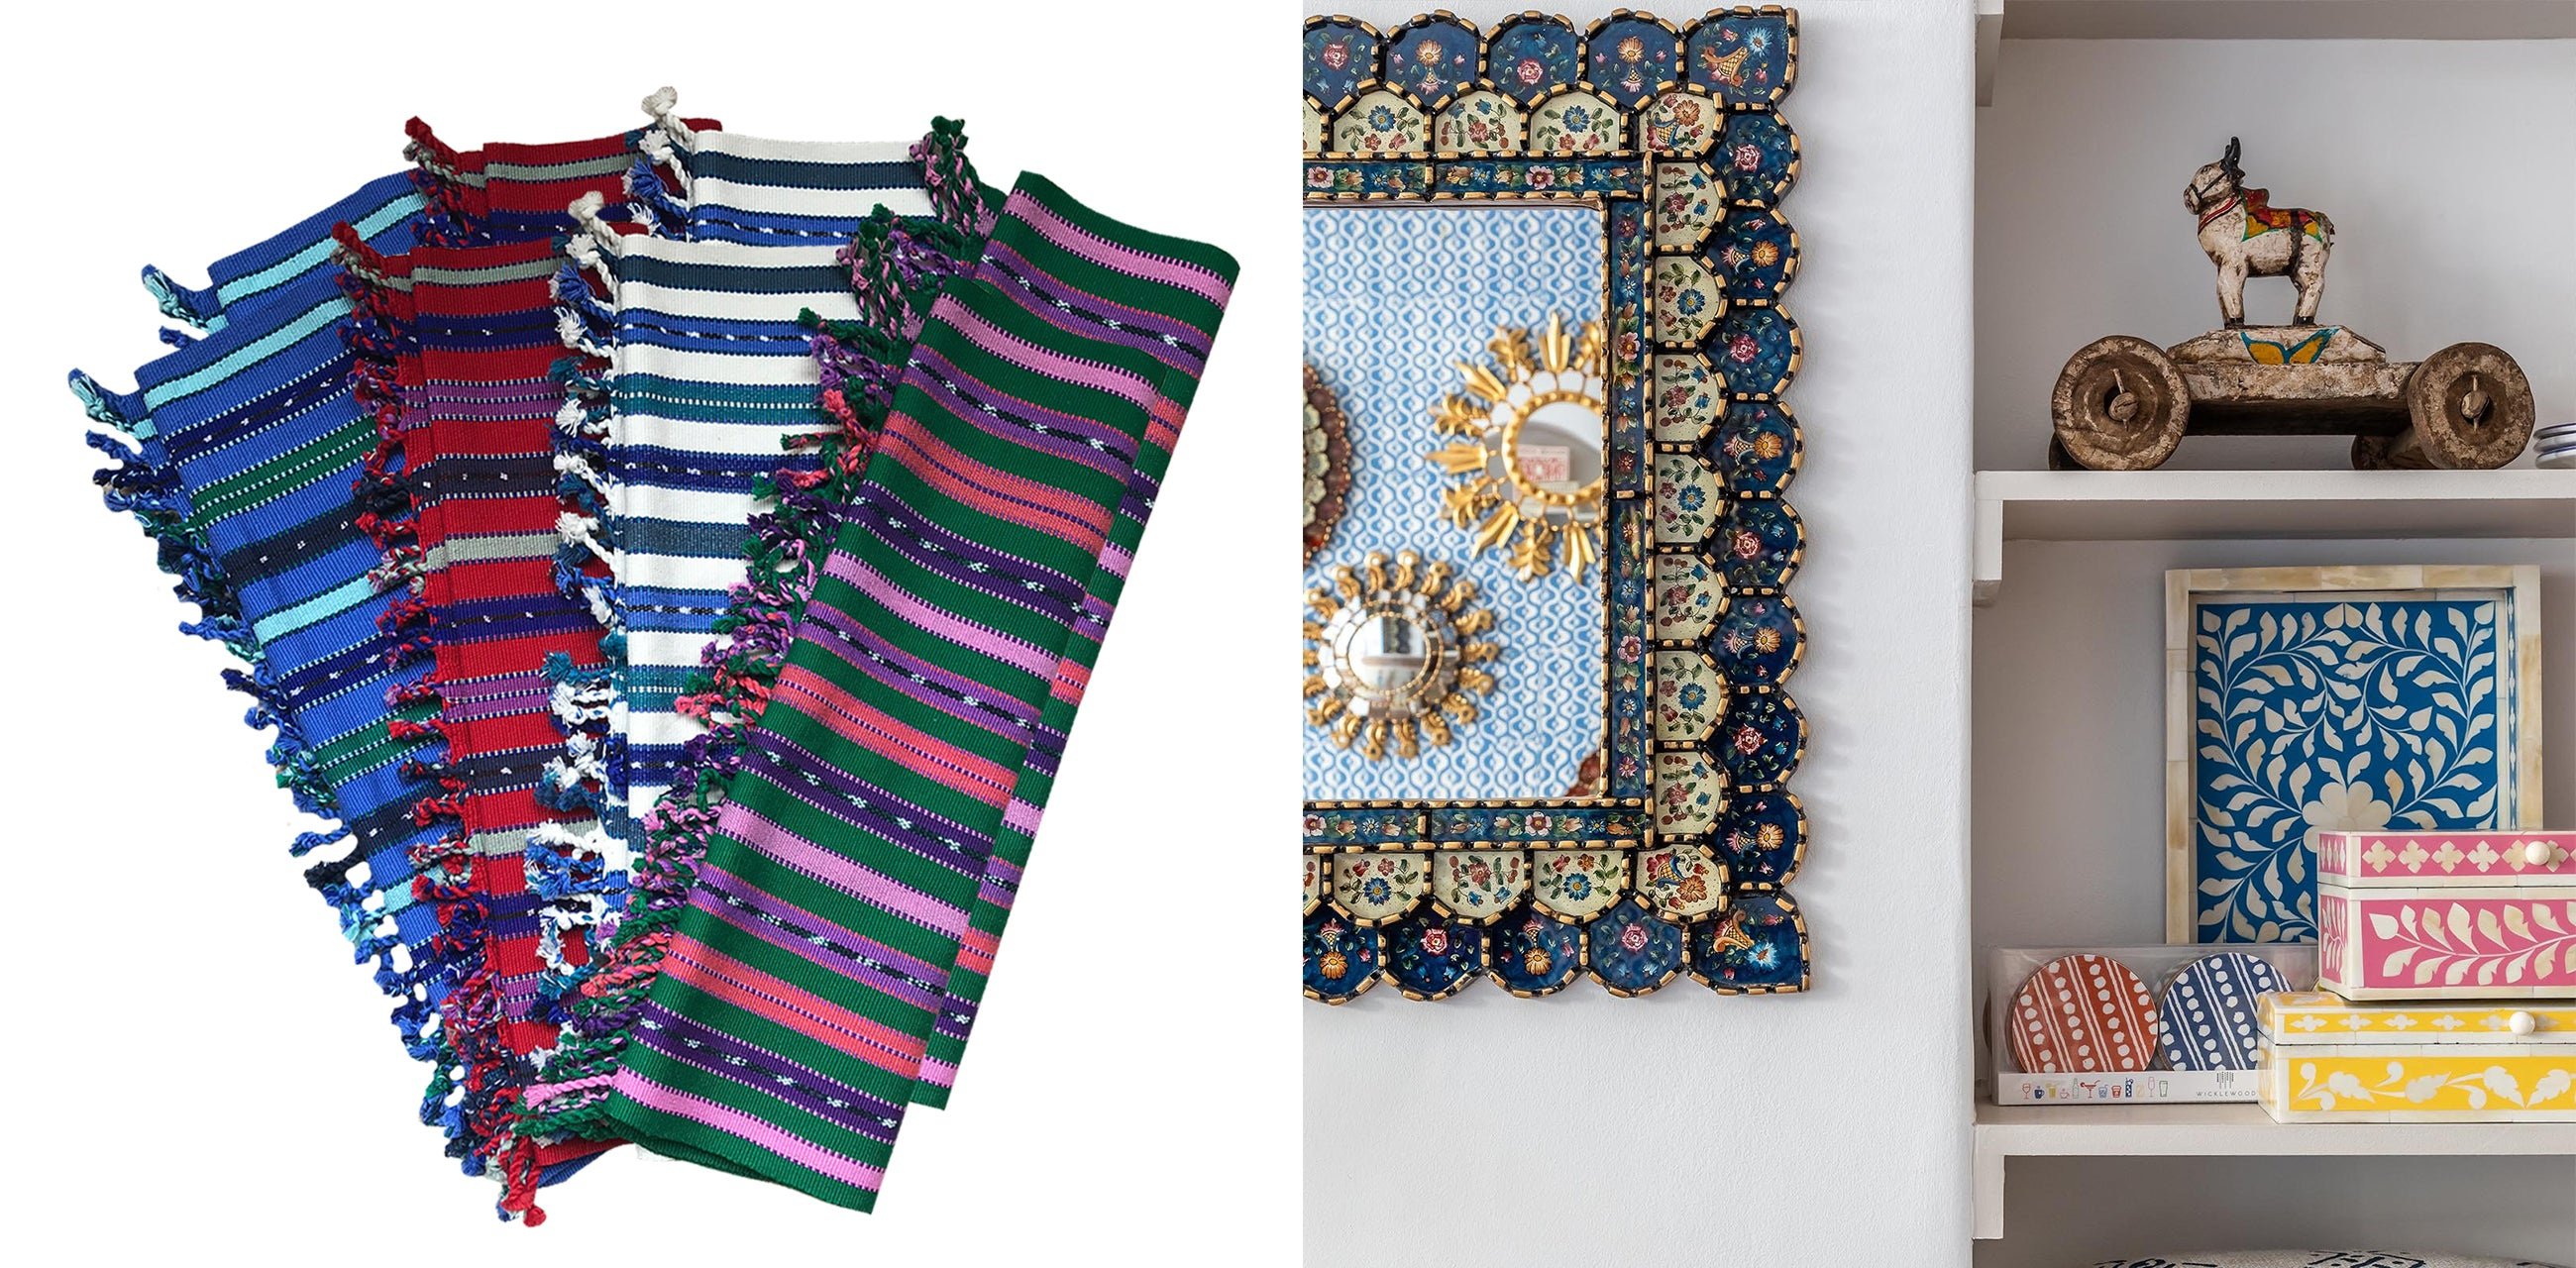 Wicklewood's ethical decorative accents, from hand woven Guatemalan placemats to hand made Indian inlay boxes and trays